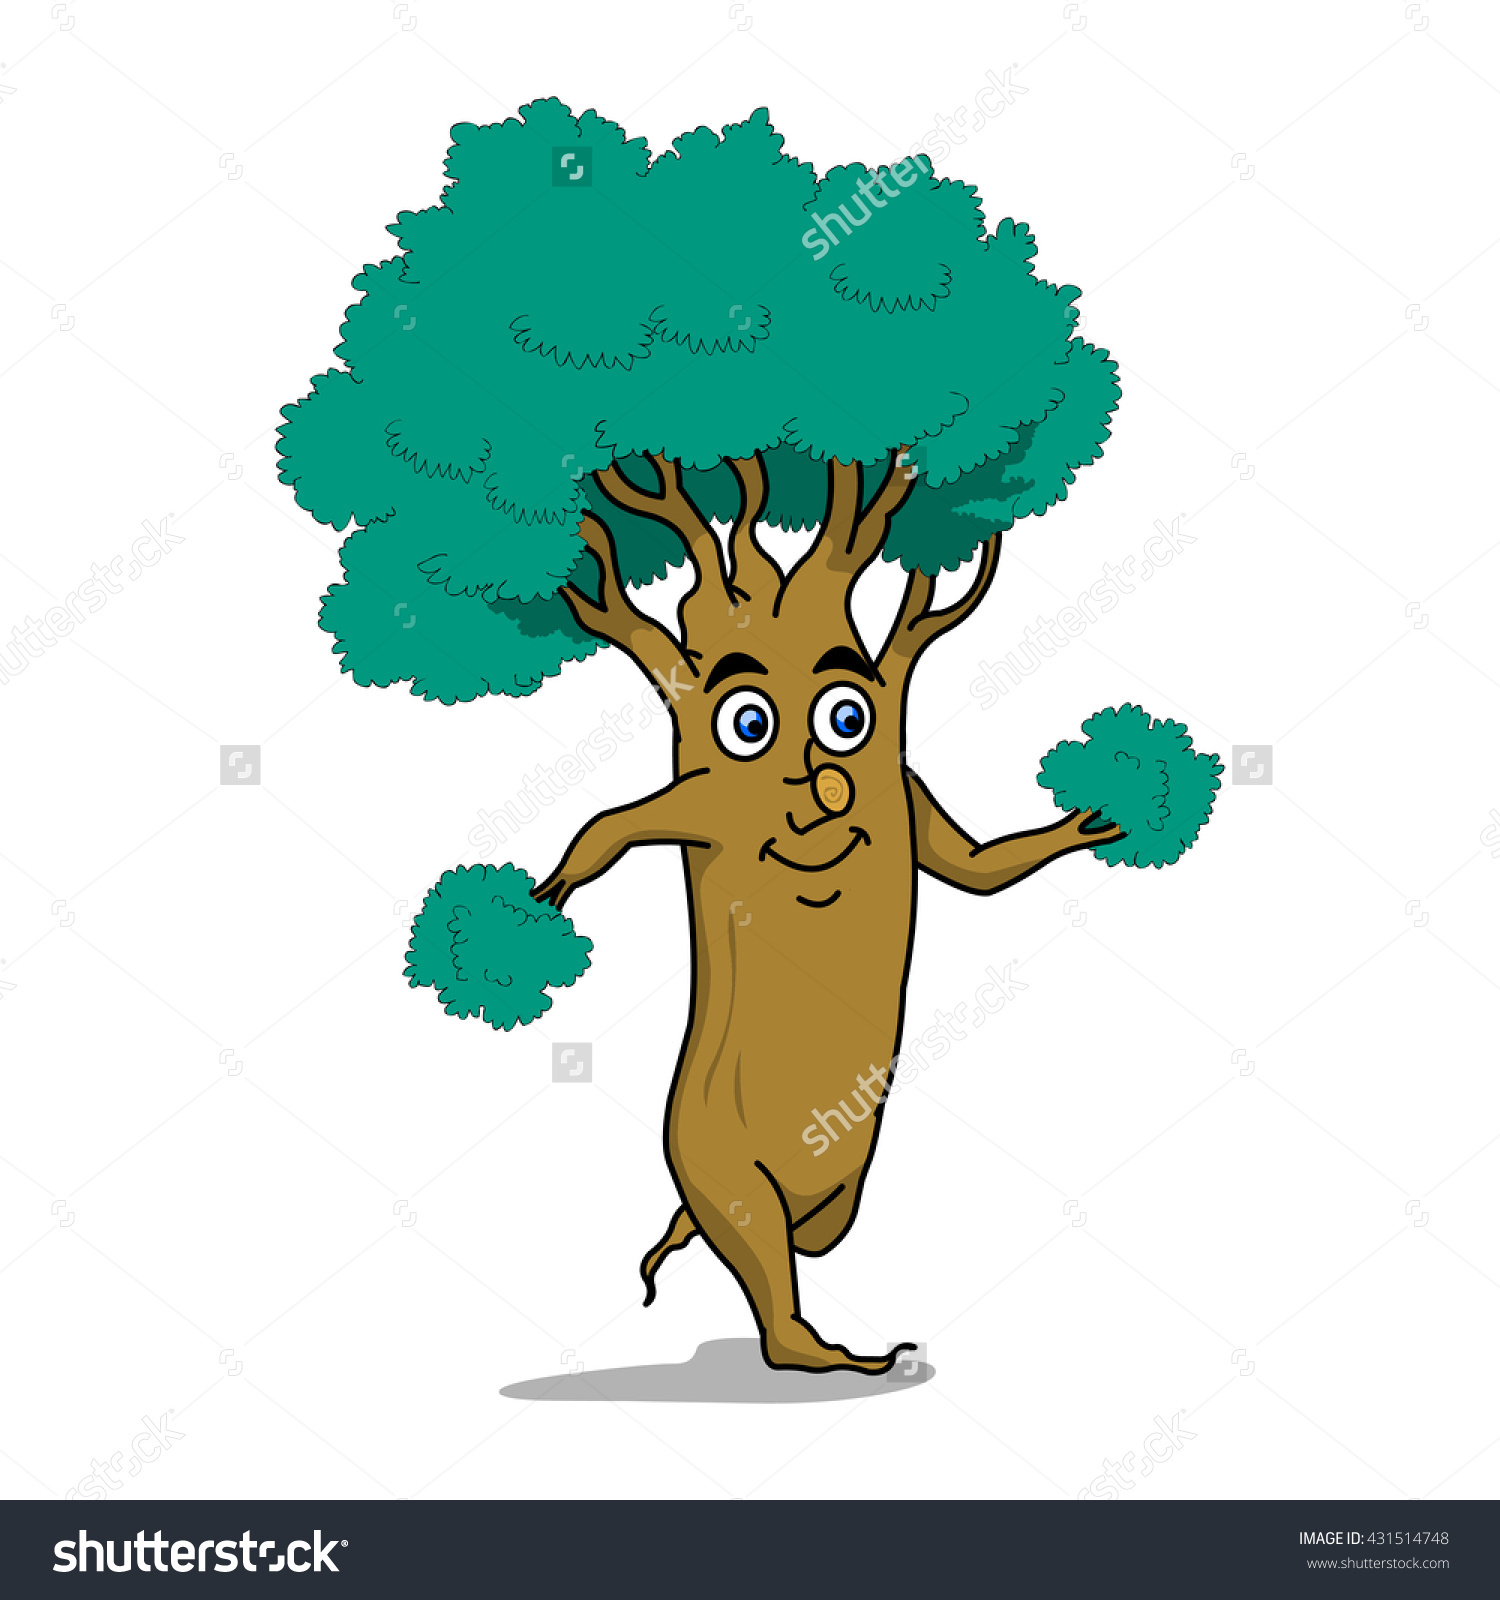 Tree Run Stock Vector Illustration 431514748 : Shutterstock.